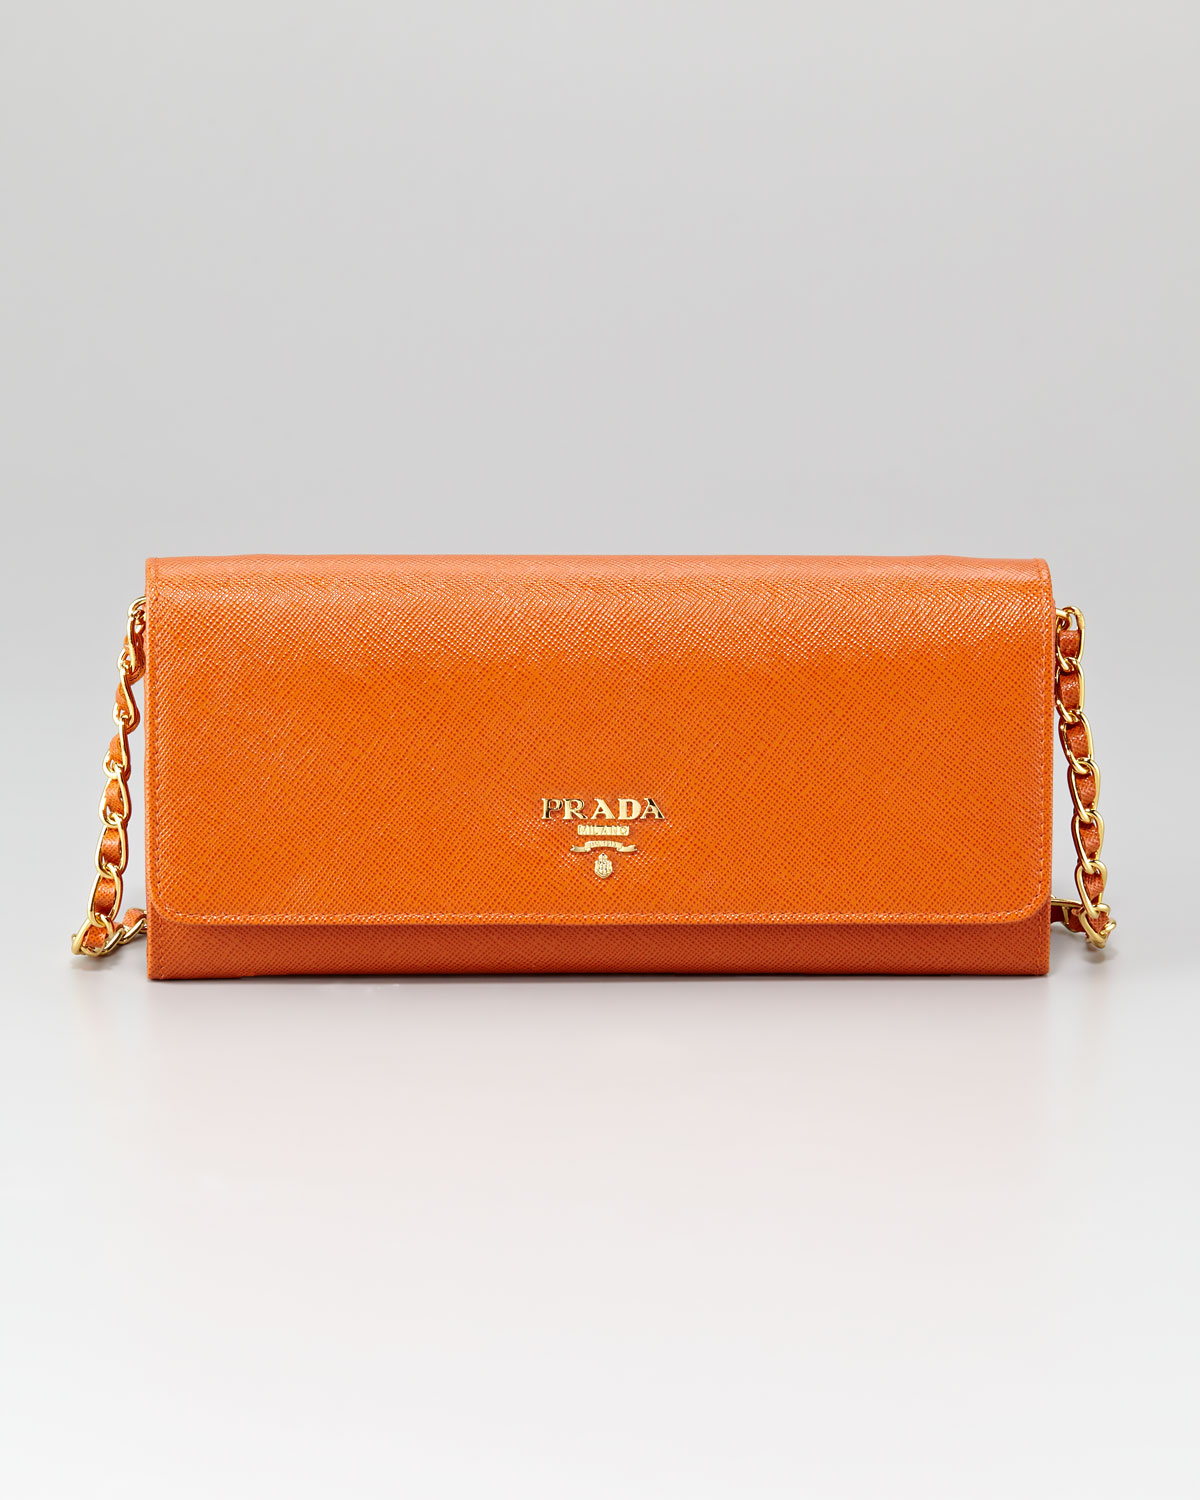 ba5db4e1e72c74 Prada Wallet On Chain Beige | Stanford Center for Opportunity Policy ...